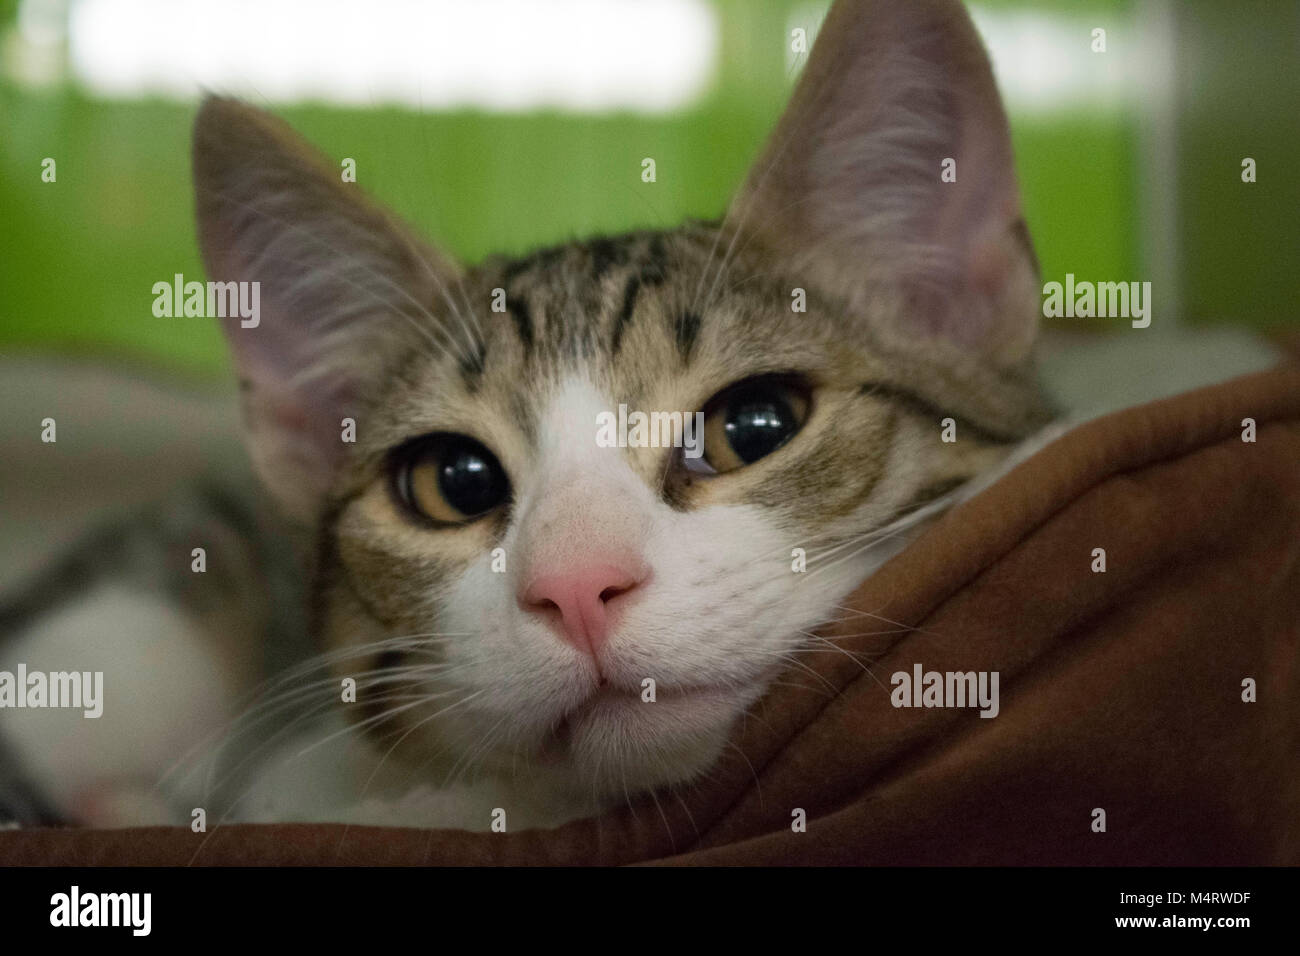 A kitten lies in its bed at the local animal shelter. - Stock Image